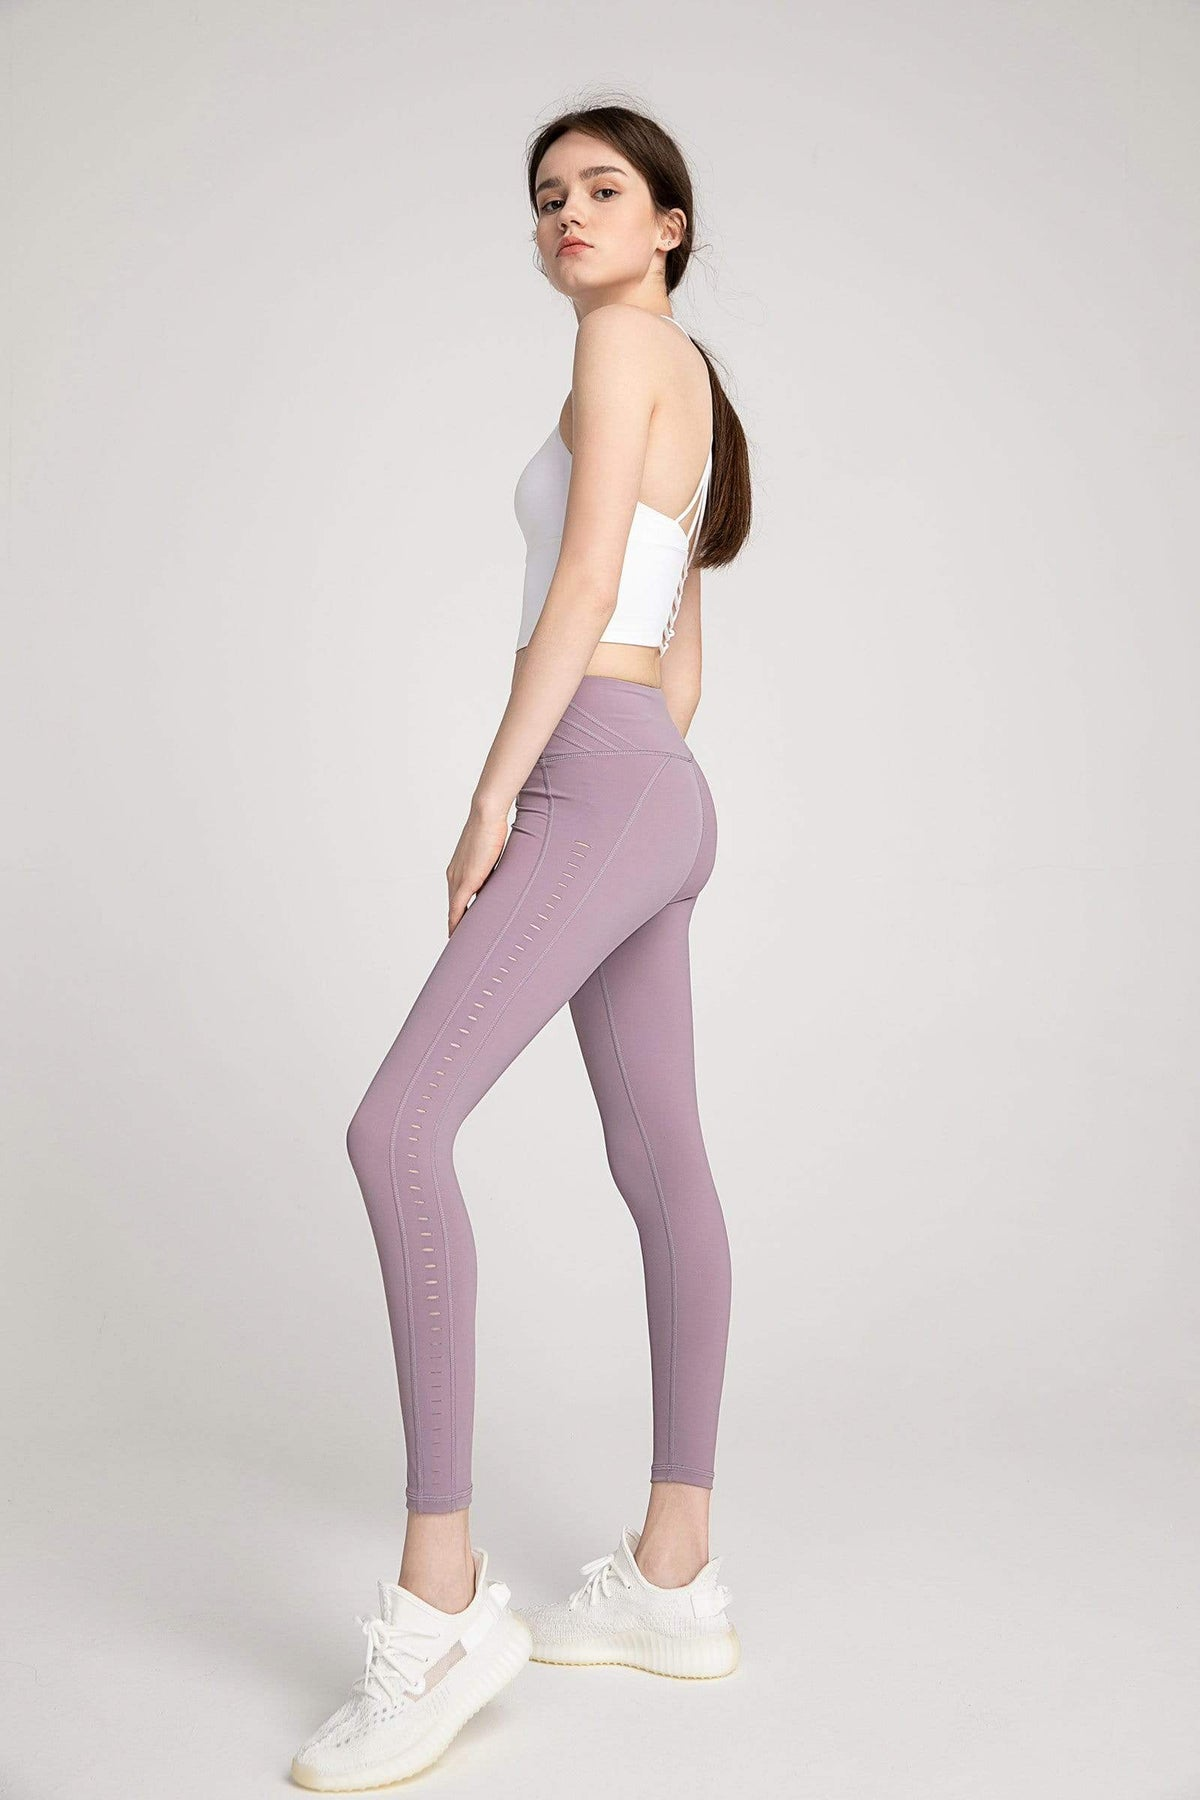 Honeysuckle Lavender High-Waist Side Panel Legging